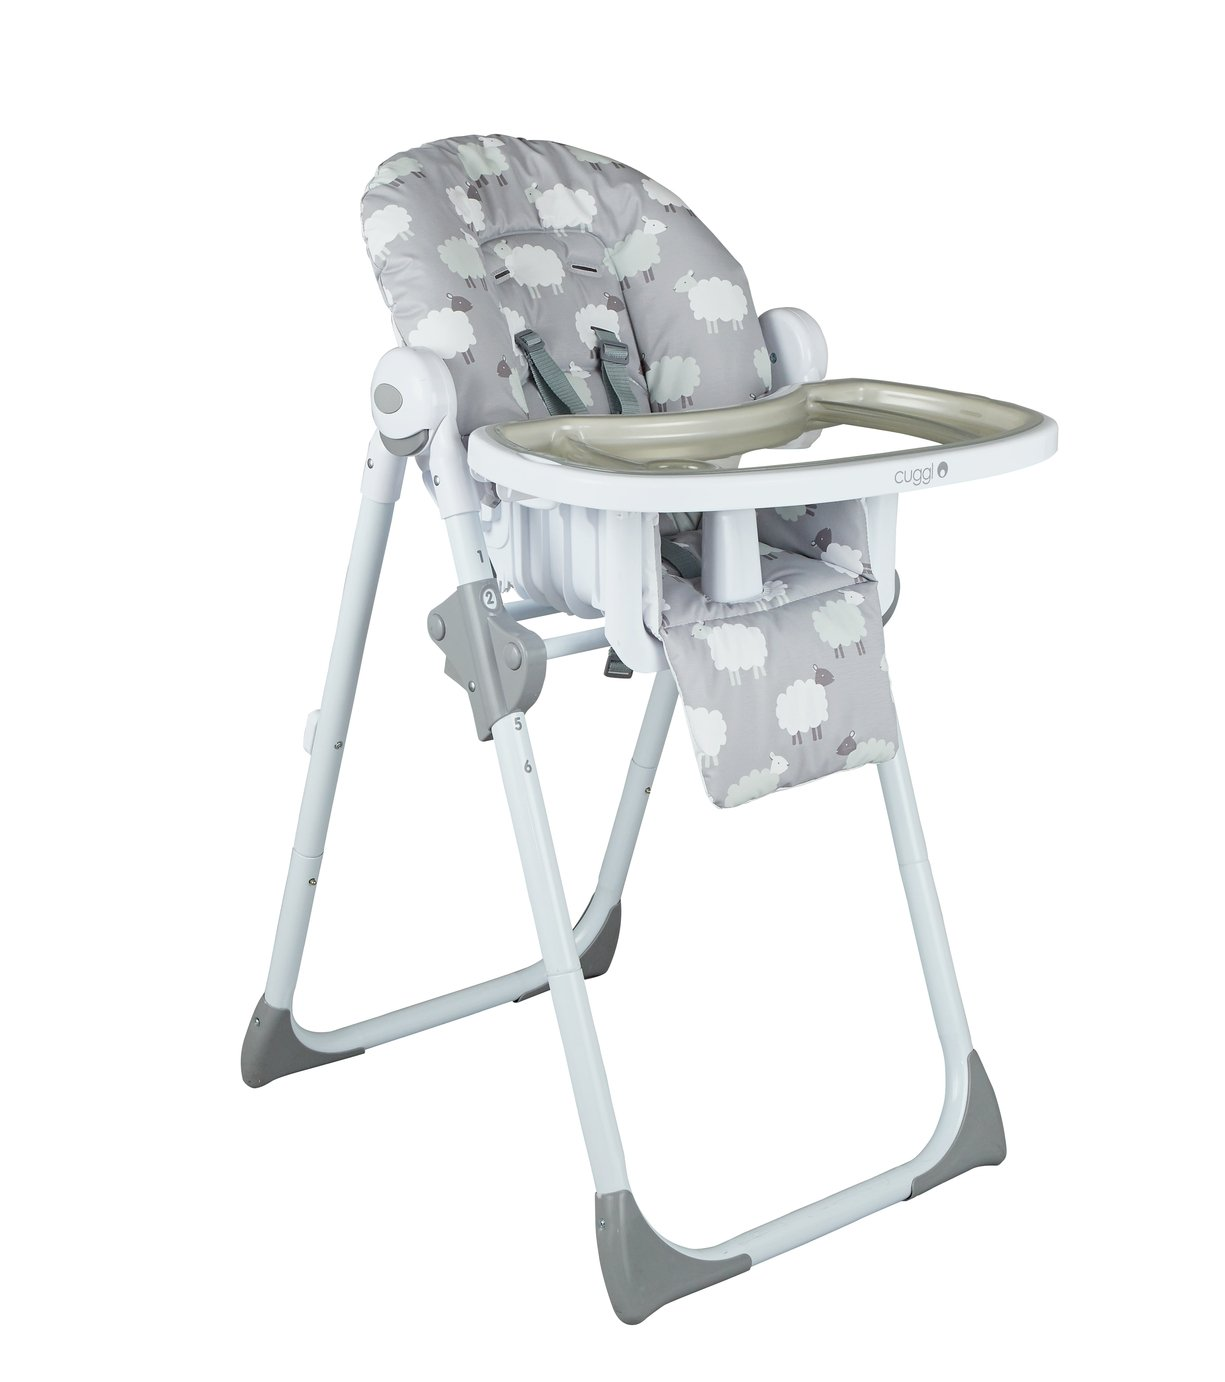 Cuggl Deluxe Highchair - Sheep